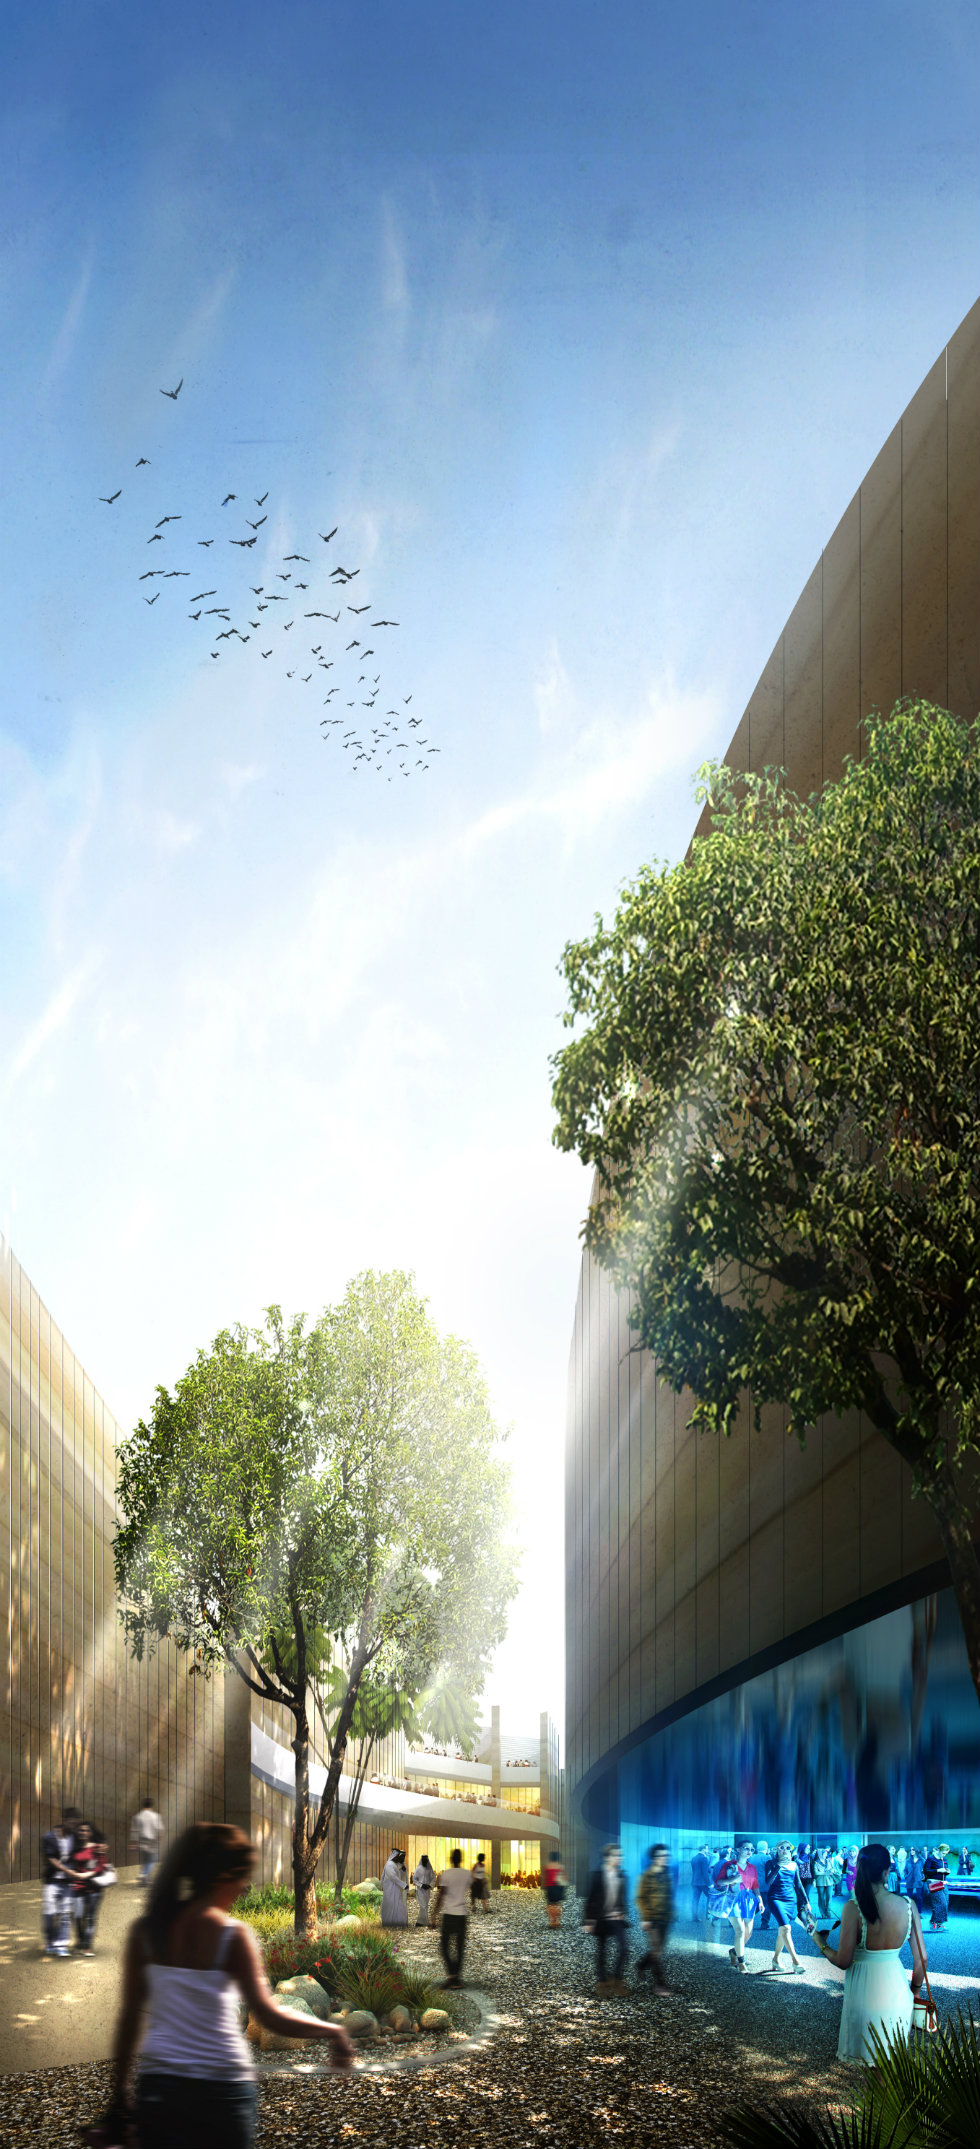 """Milan Expo 2015 Foster and Partners designs UAE Pavillion"""""""